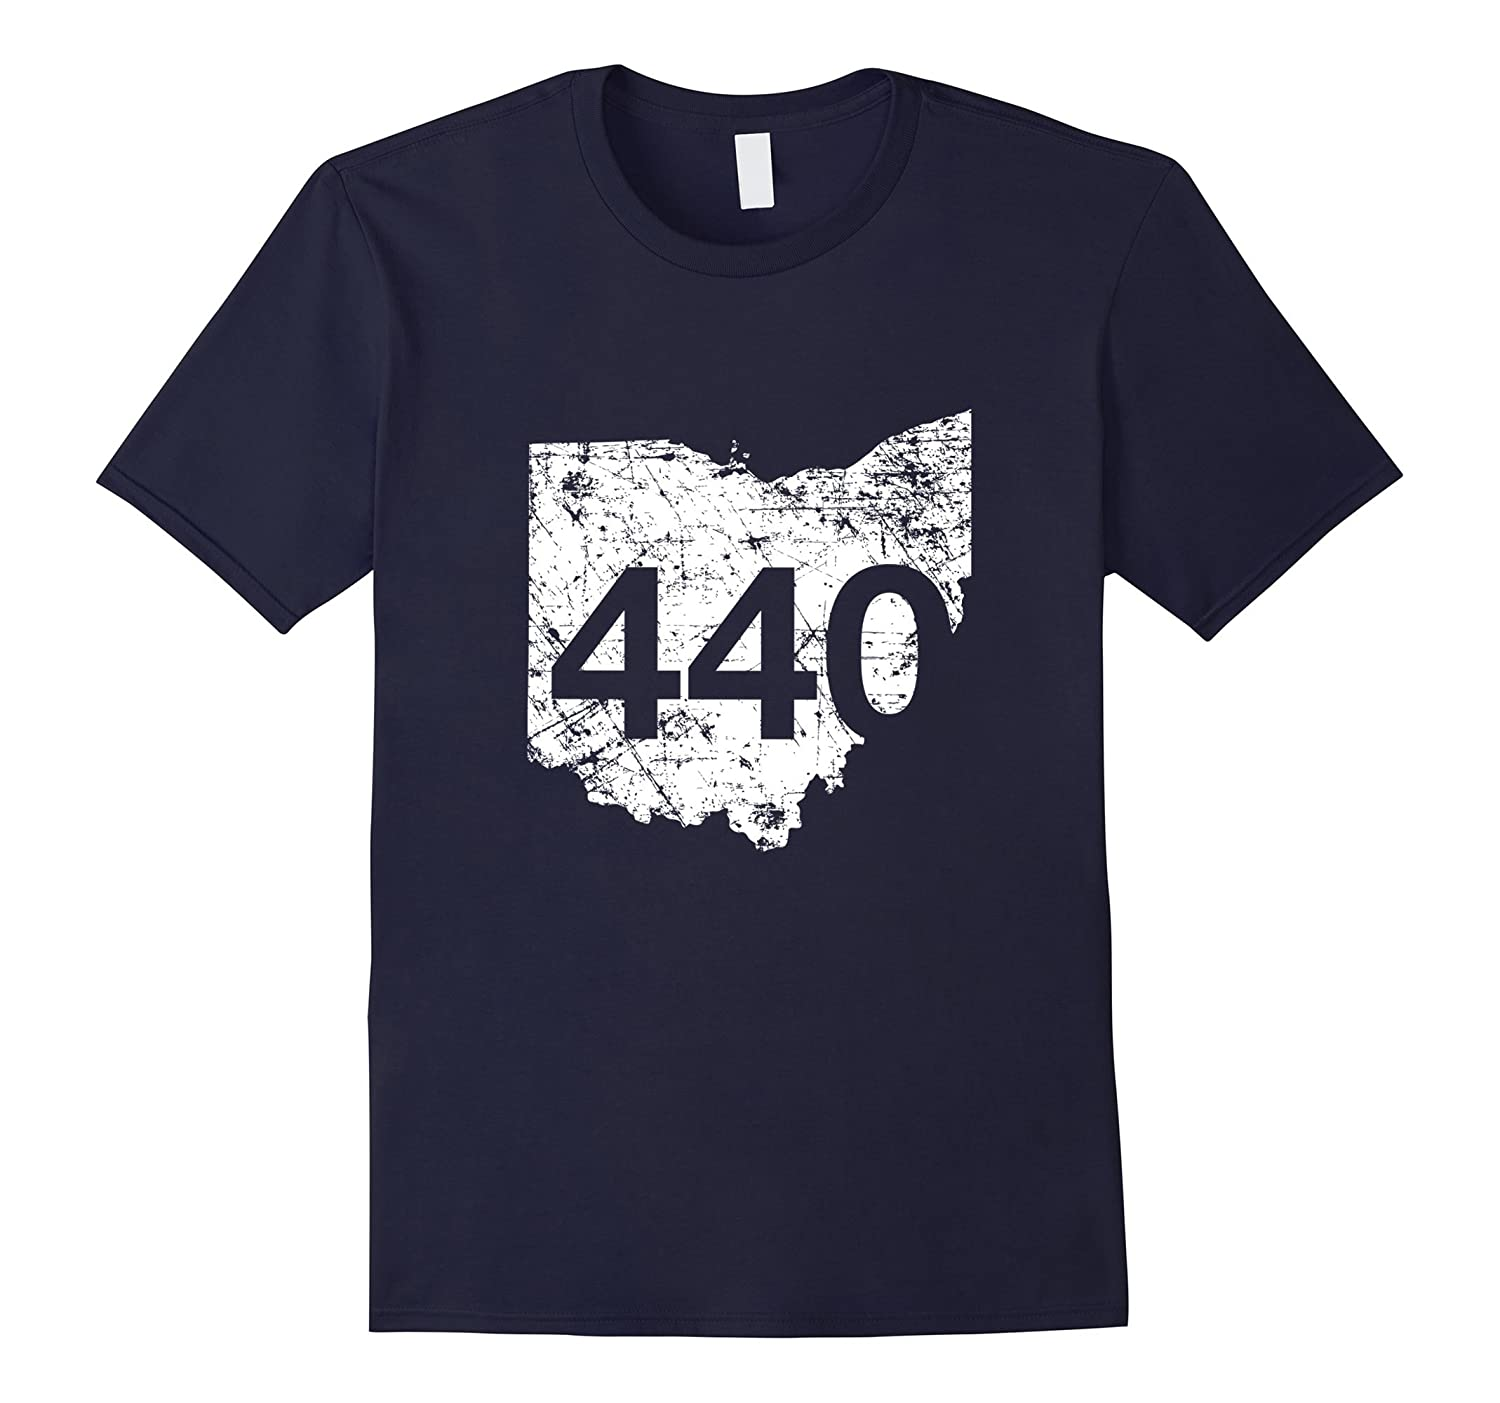 Lorain Elyria Strongsville Area Code 440 Shirt Ohio Gift-PL